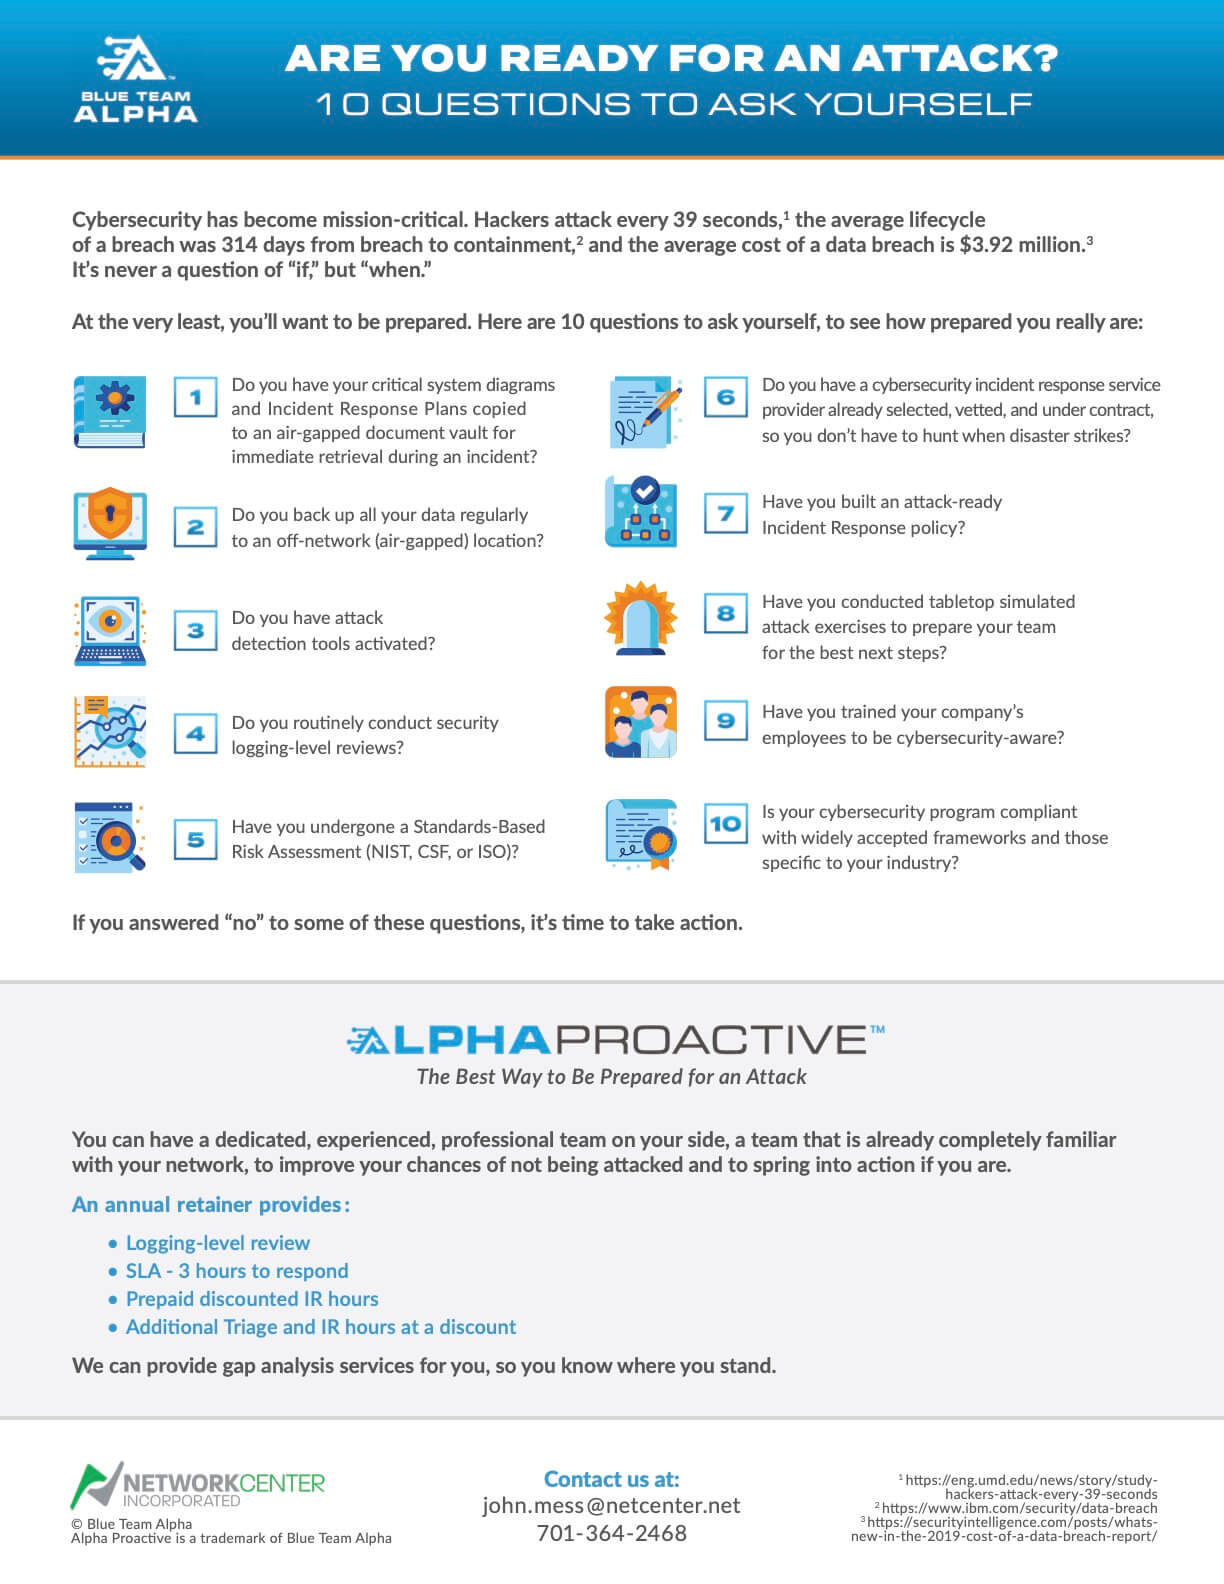 Sales Sheet for Blue Team Alpha produced by Zhivago Partners